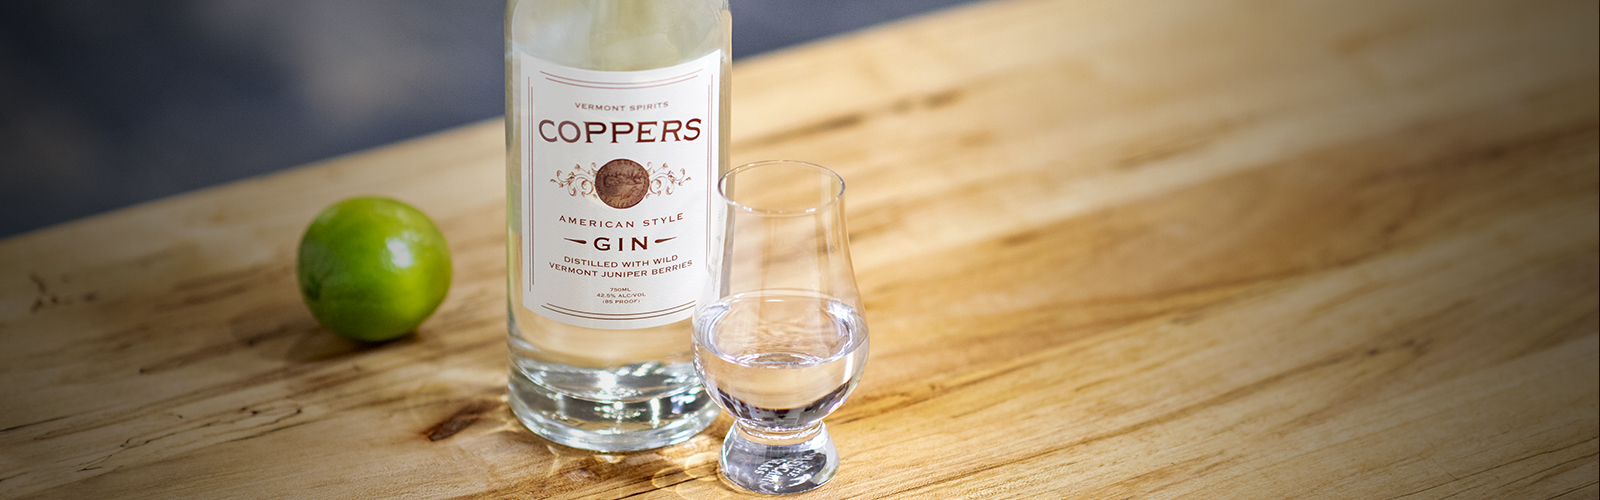 coppers gin handcrafted vermont spirits distillery